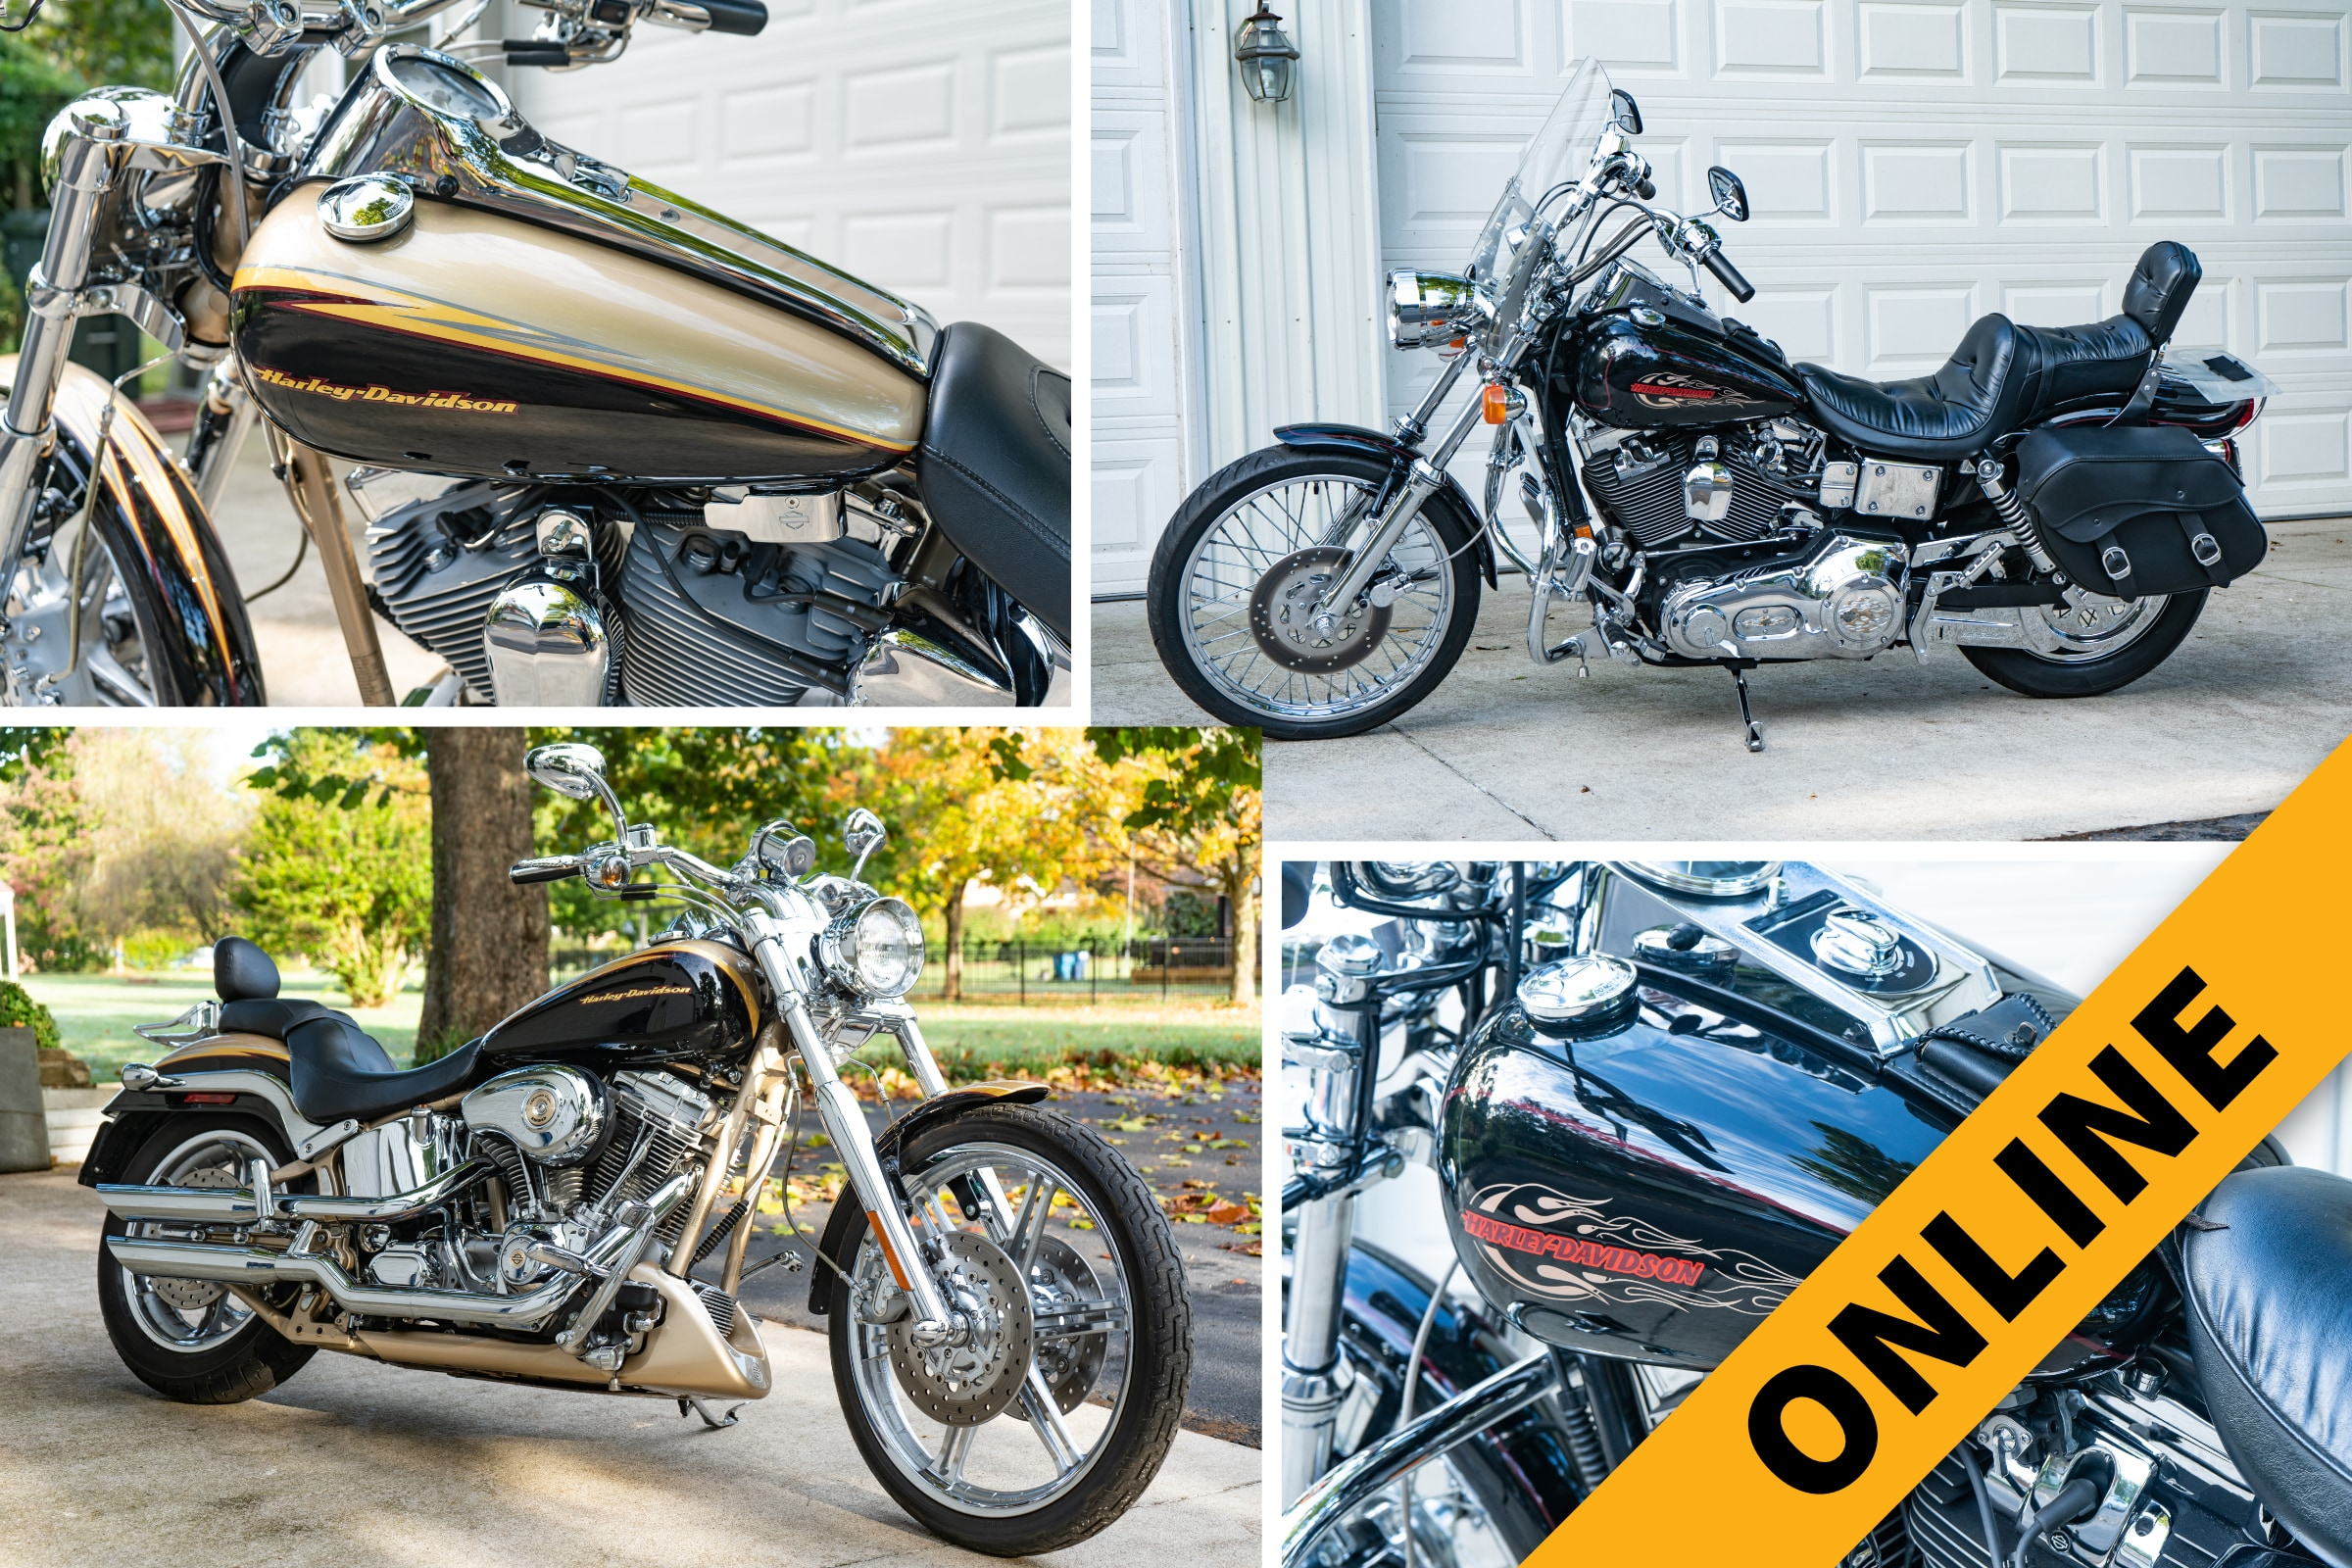 Harley-Davidson Online Auction